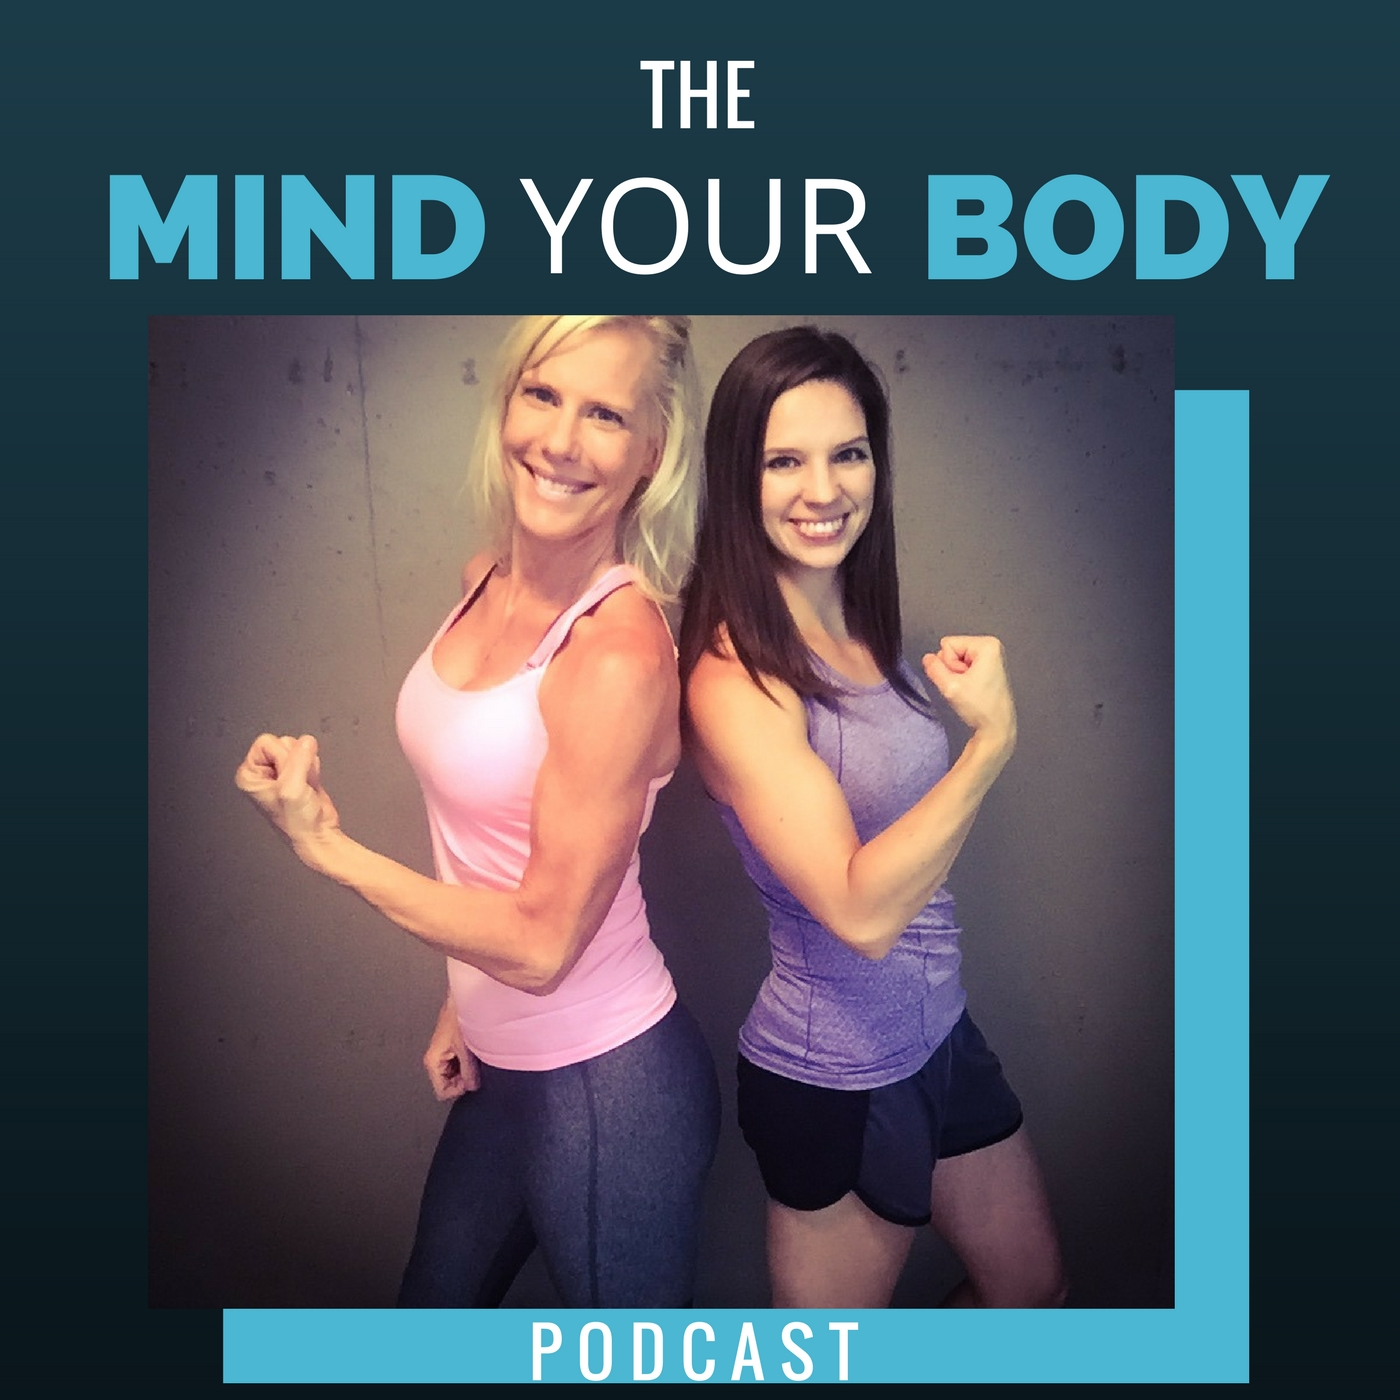 The Mind Your Body Podcast: Tools for Healthy Transformation